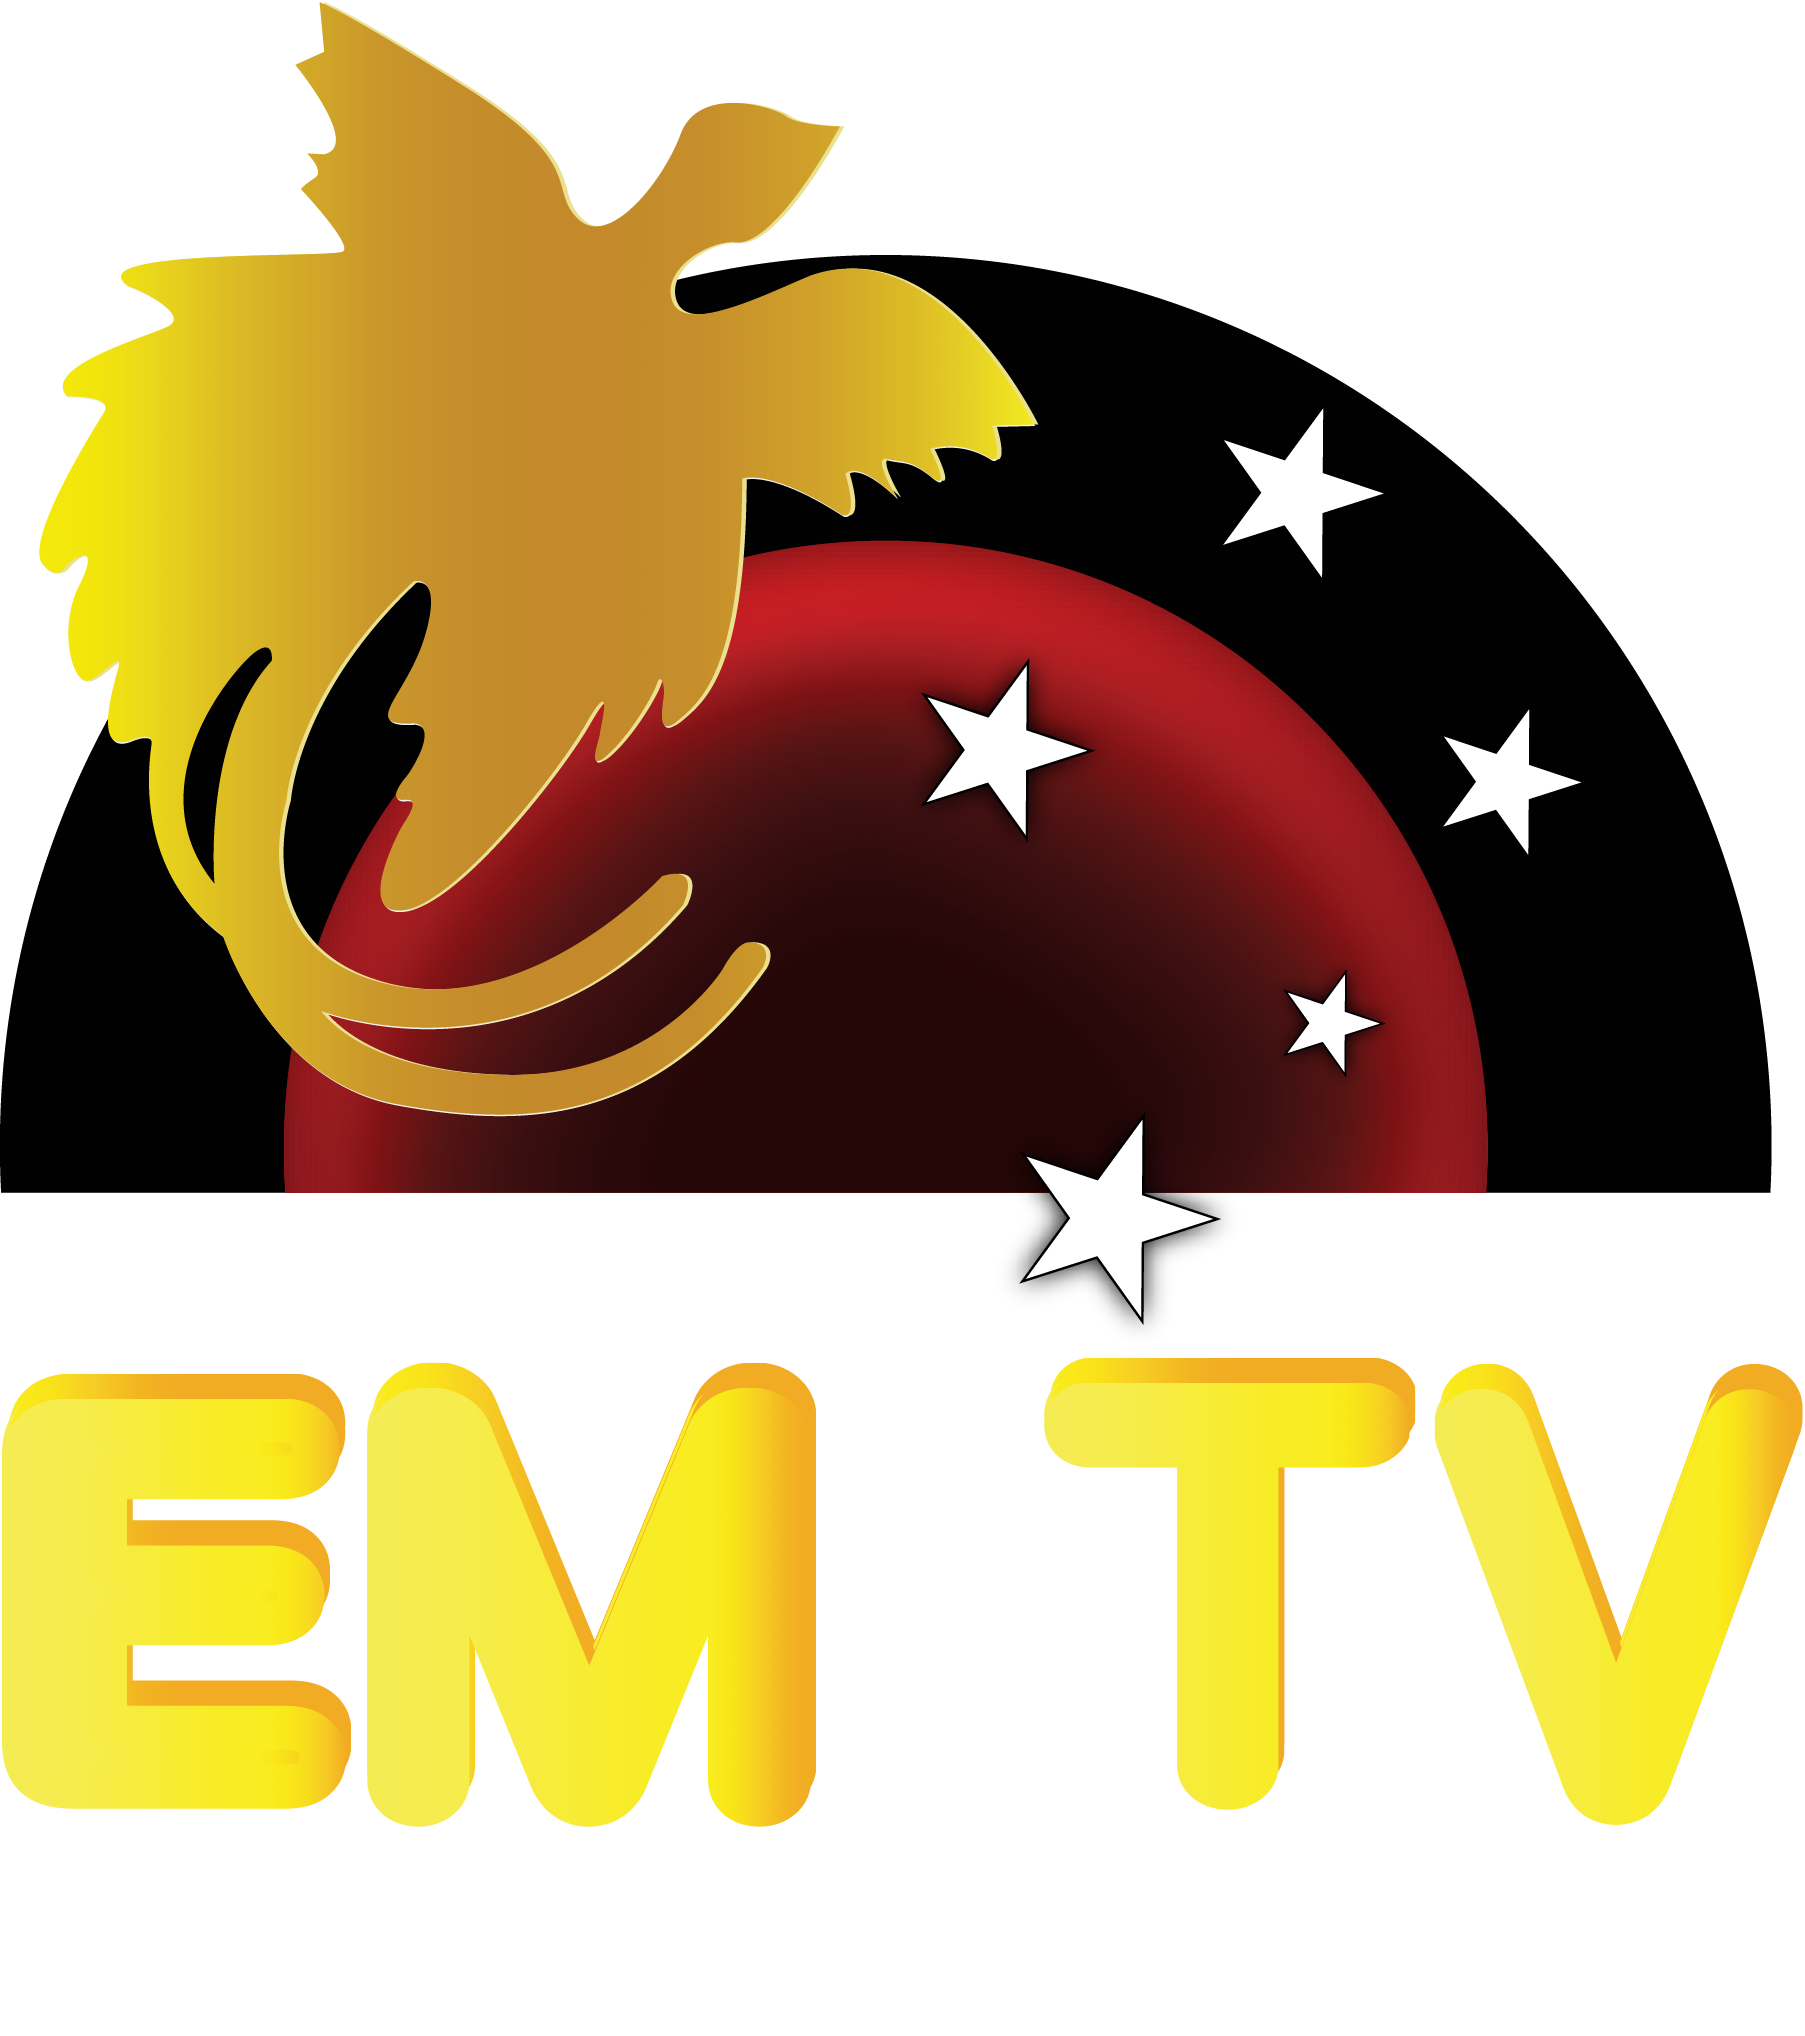 Emtv clipart live Transparent pictures on F.